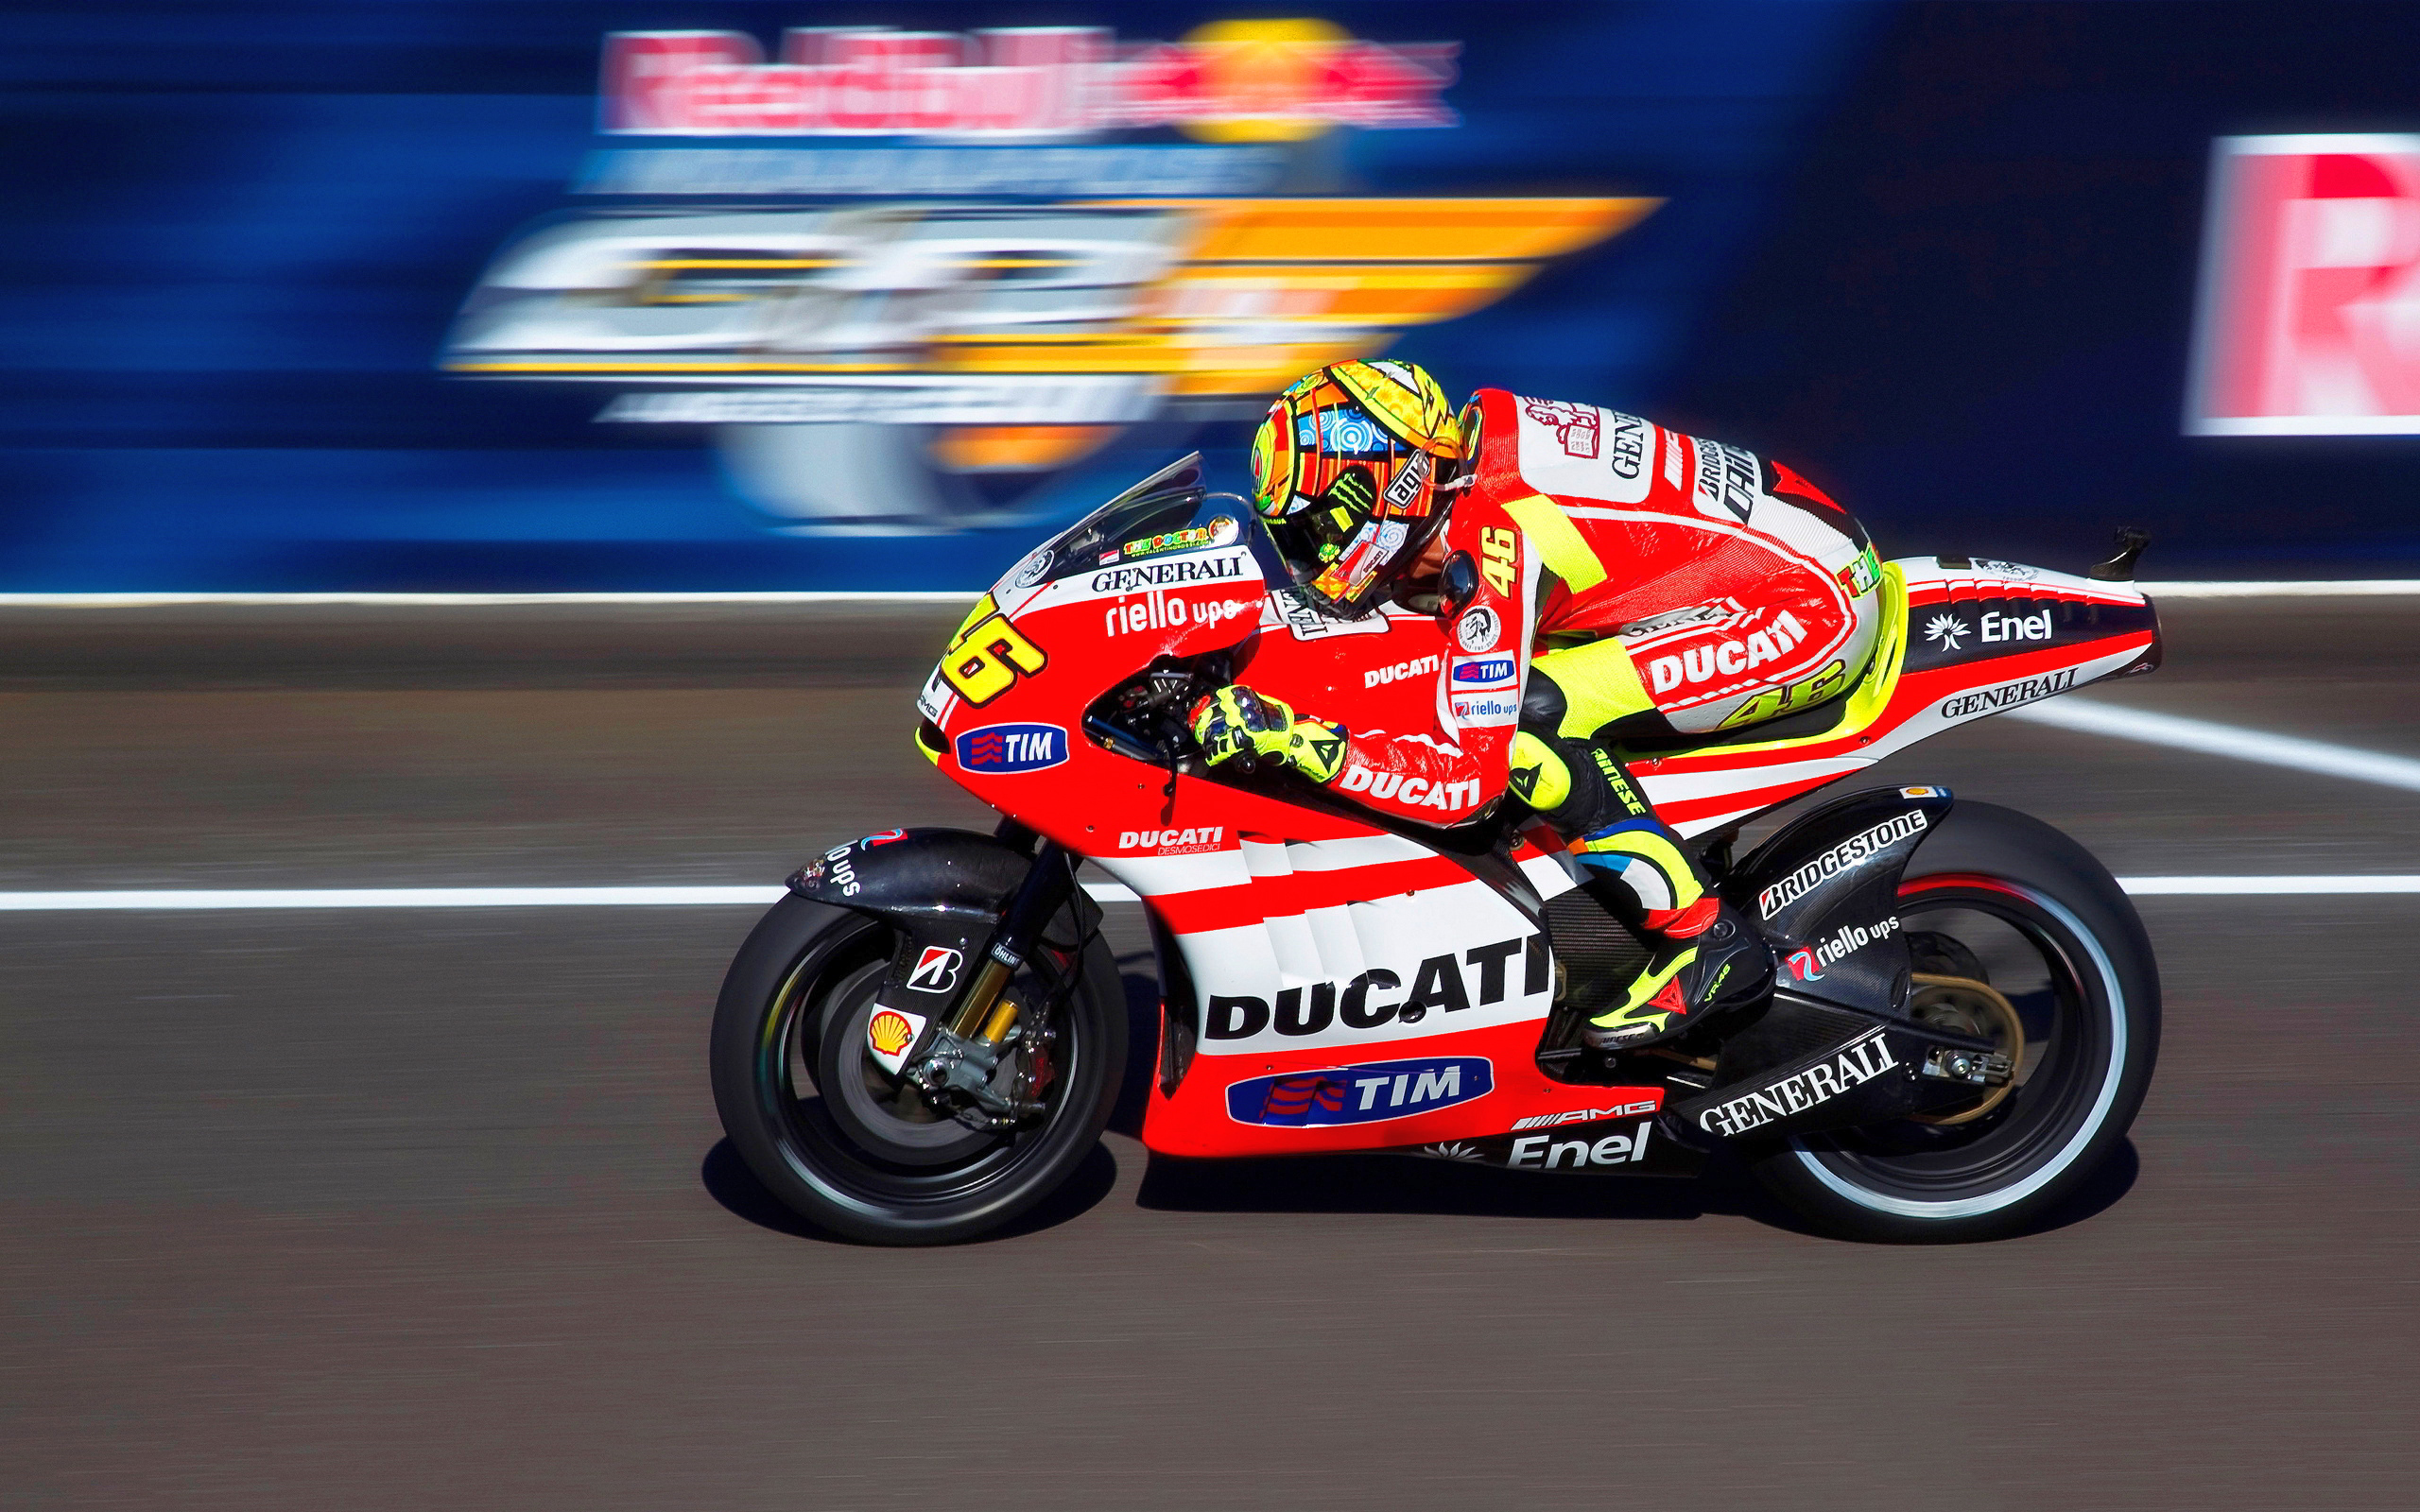 Wallpaper iphone valentino rossi - Motogp Valentino Rossi Ducati Wallpapers